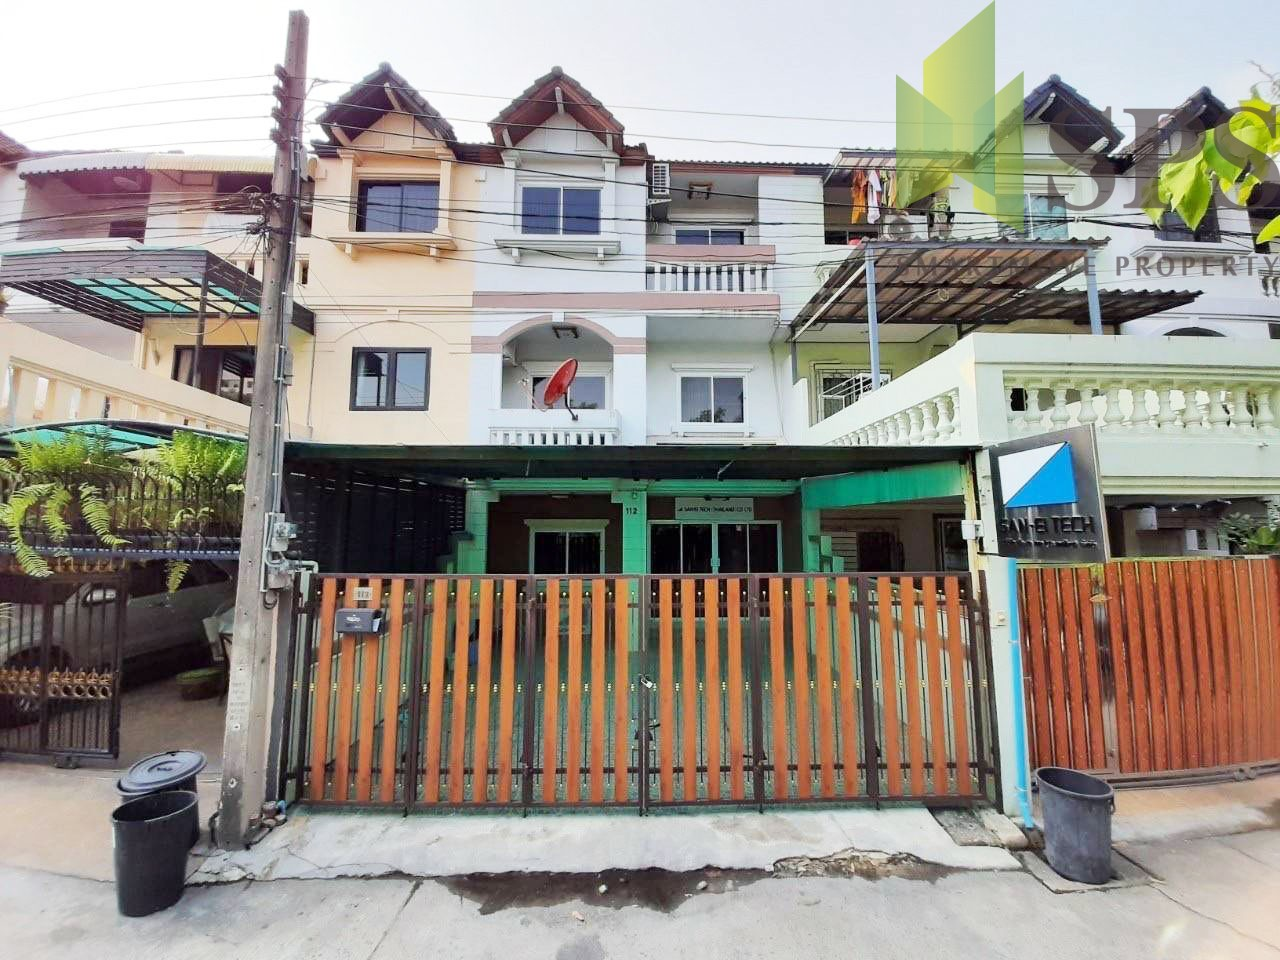 Townhome for RENT / SALE in Sukhumvit 66/1 (SPSP230)